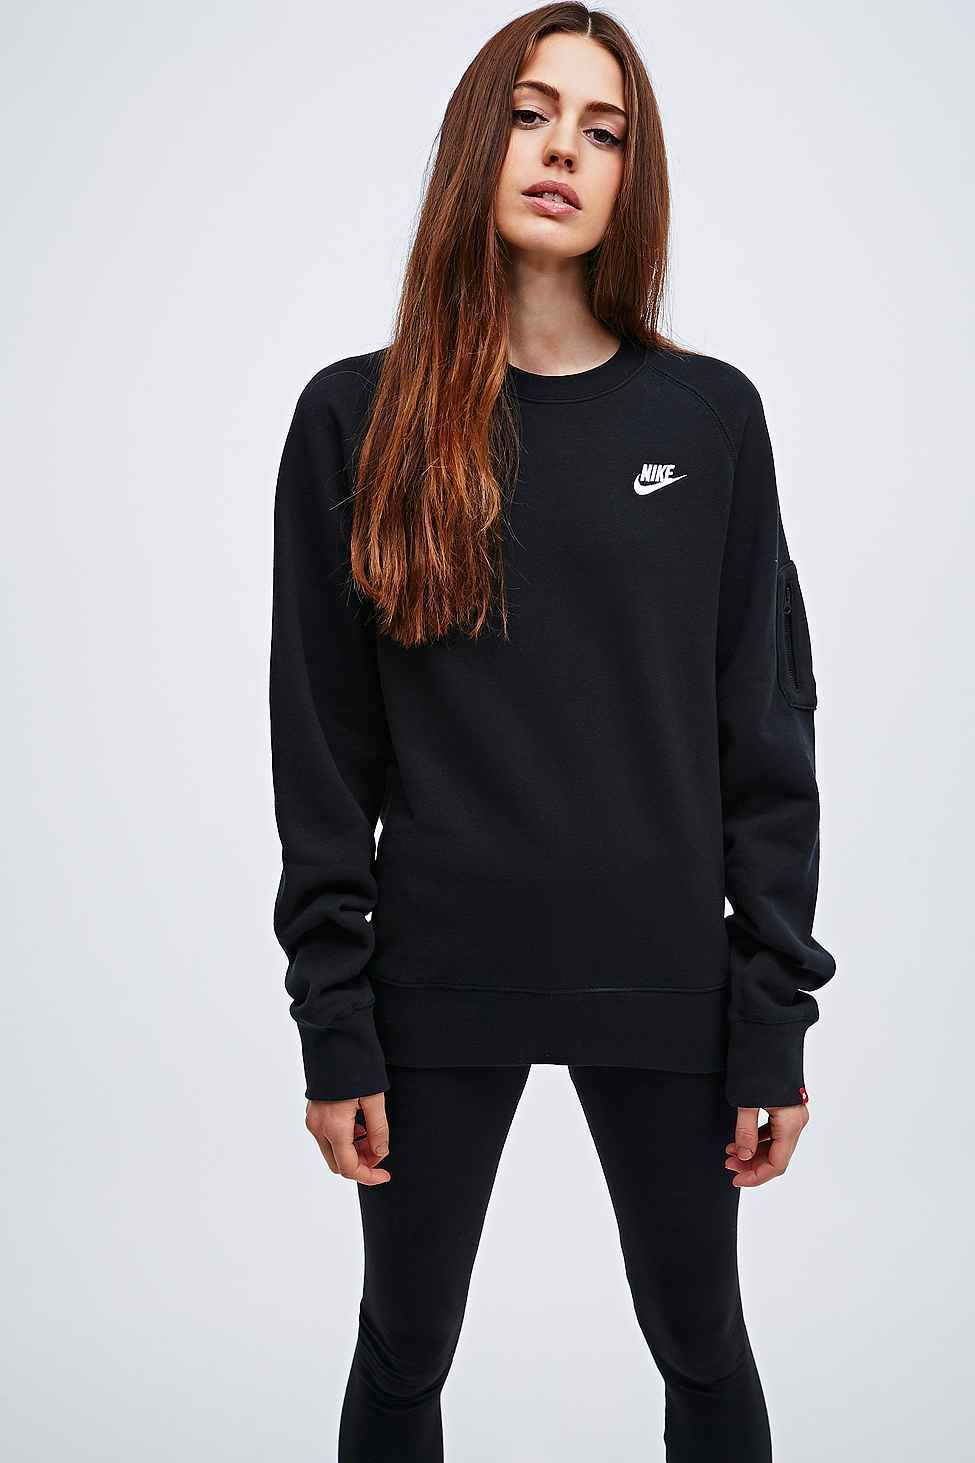 Crew Nike Neck Et Femme In Black Mode Pull Wishlist Sweatshirt 1ddrwz5q